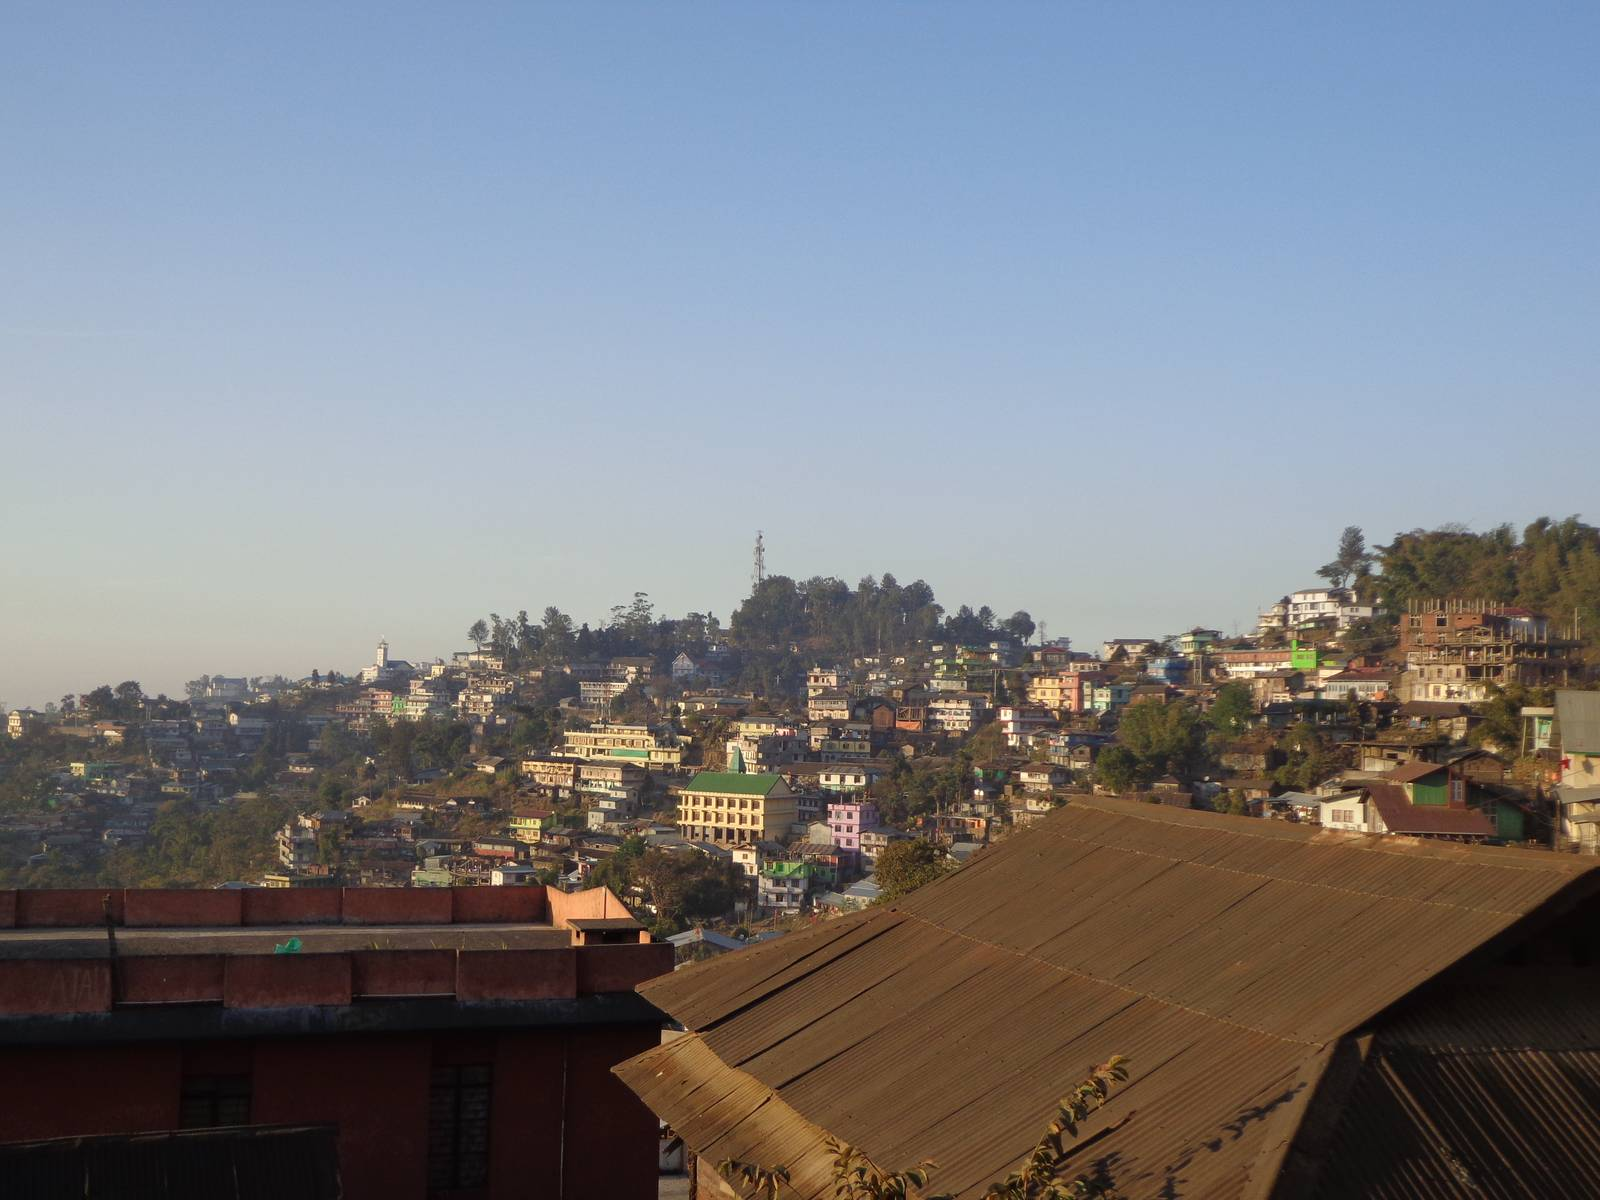 I have a cheap point and shoot. This shot of Kohima from a moving vehicle doesn't do justice.